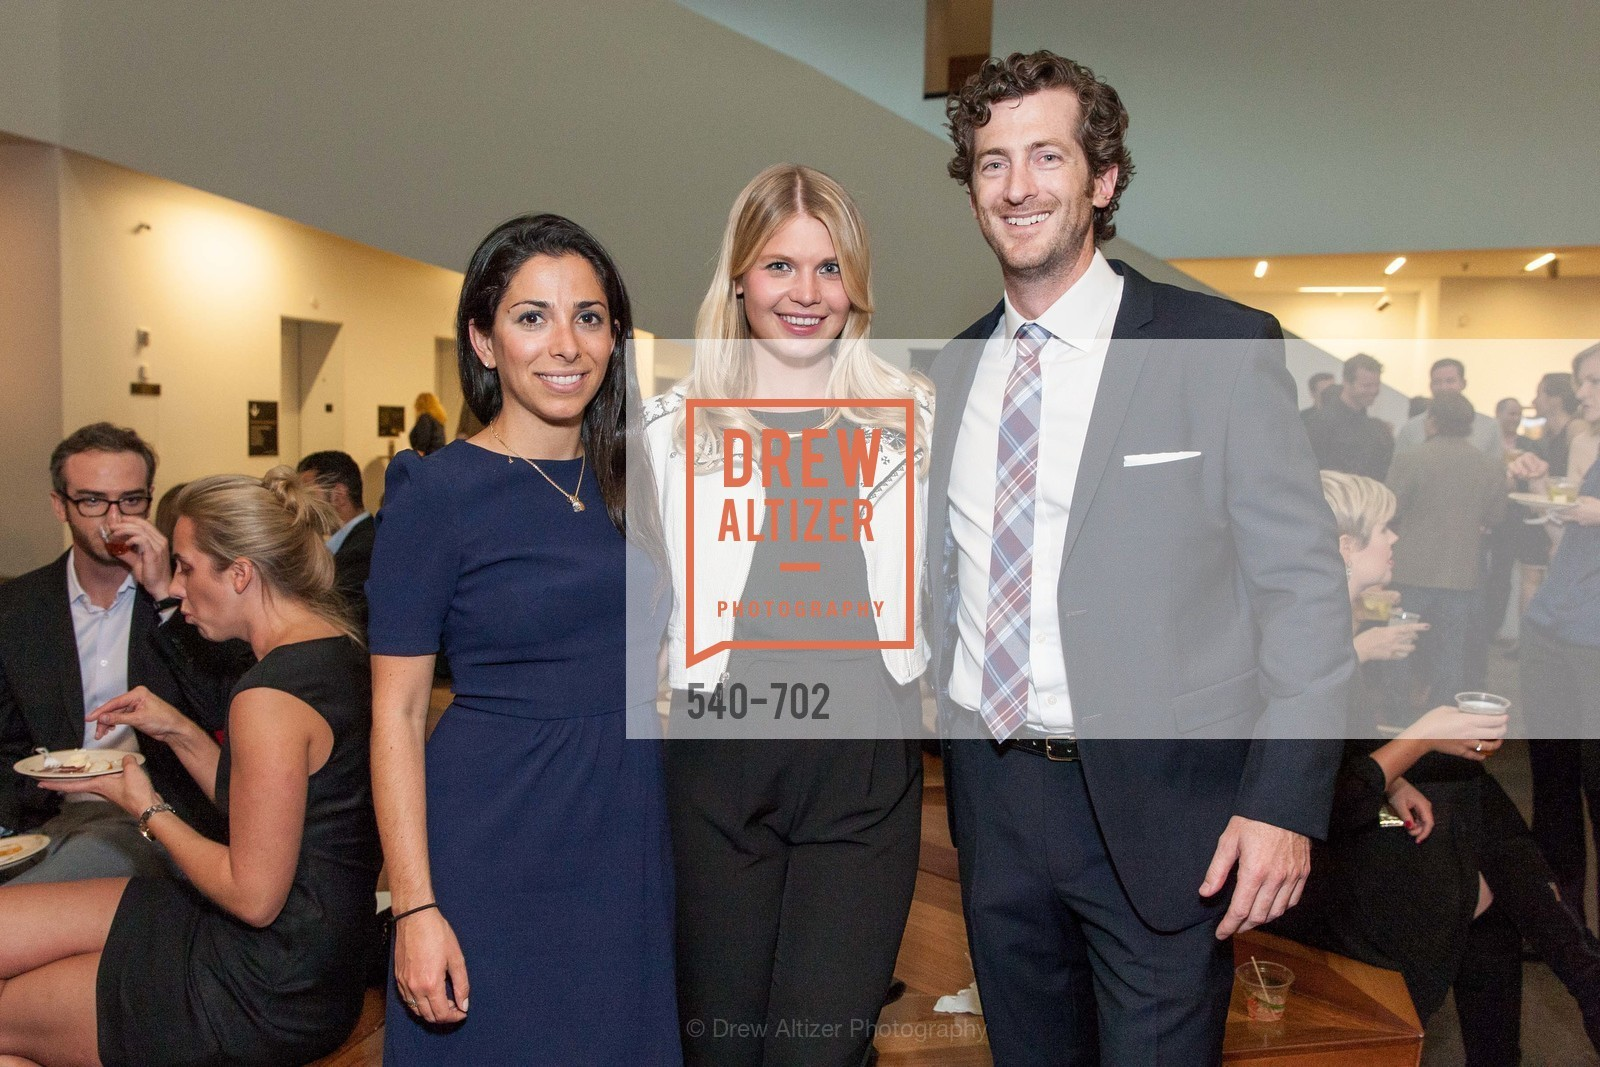 Elise Pfeiffer, Xenia Nosov, Malcolm Post, ARTPOINT:  Masterpieces from the National Galleries of Scotland and Scotch Tastings, US, May 8th, 2015,Drew Altizer, Drew Altizer Photography, full-service agency, private events, San Francisco photographer, photographer california